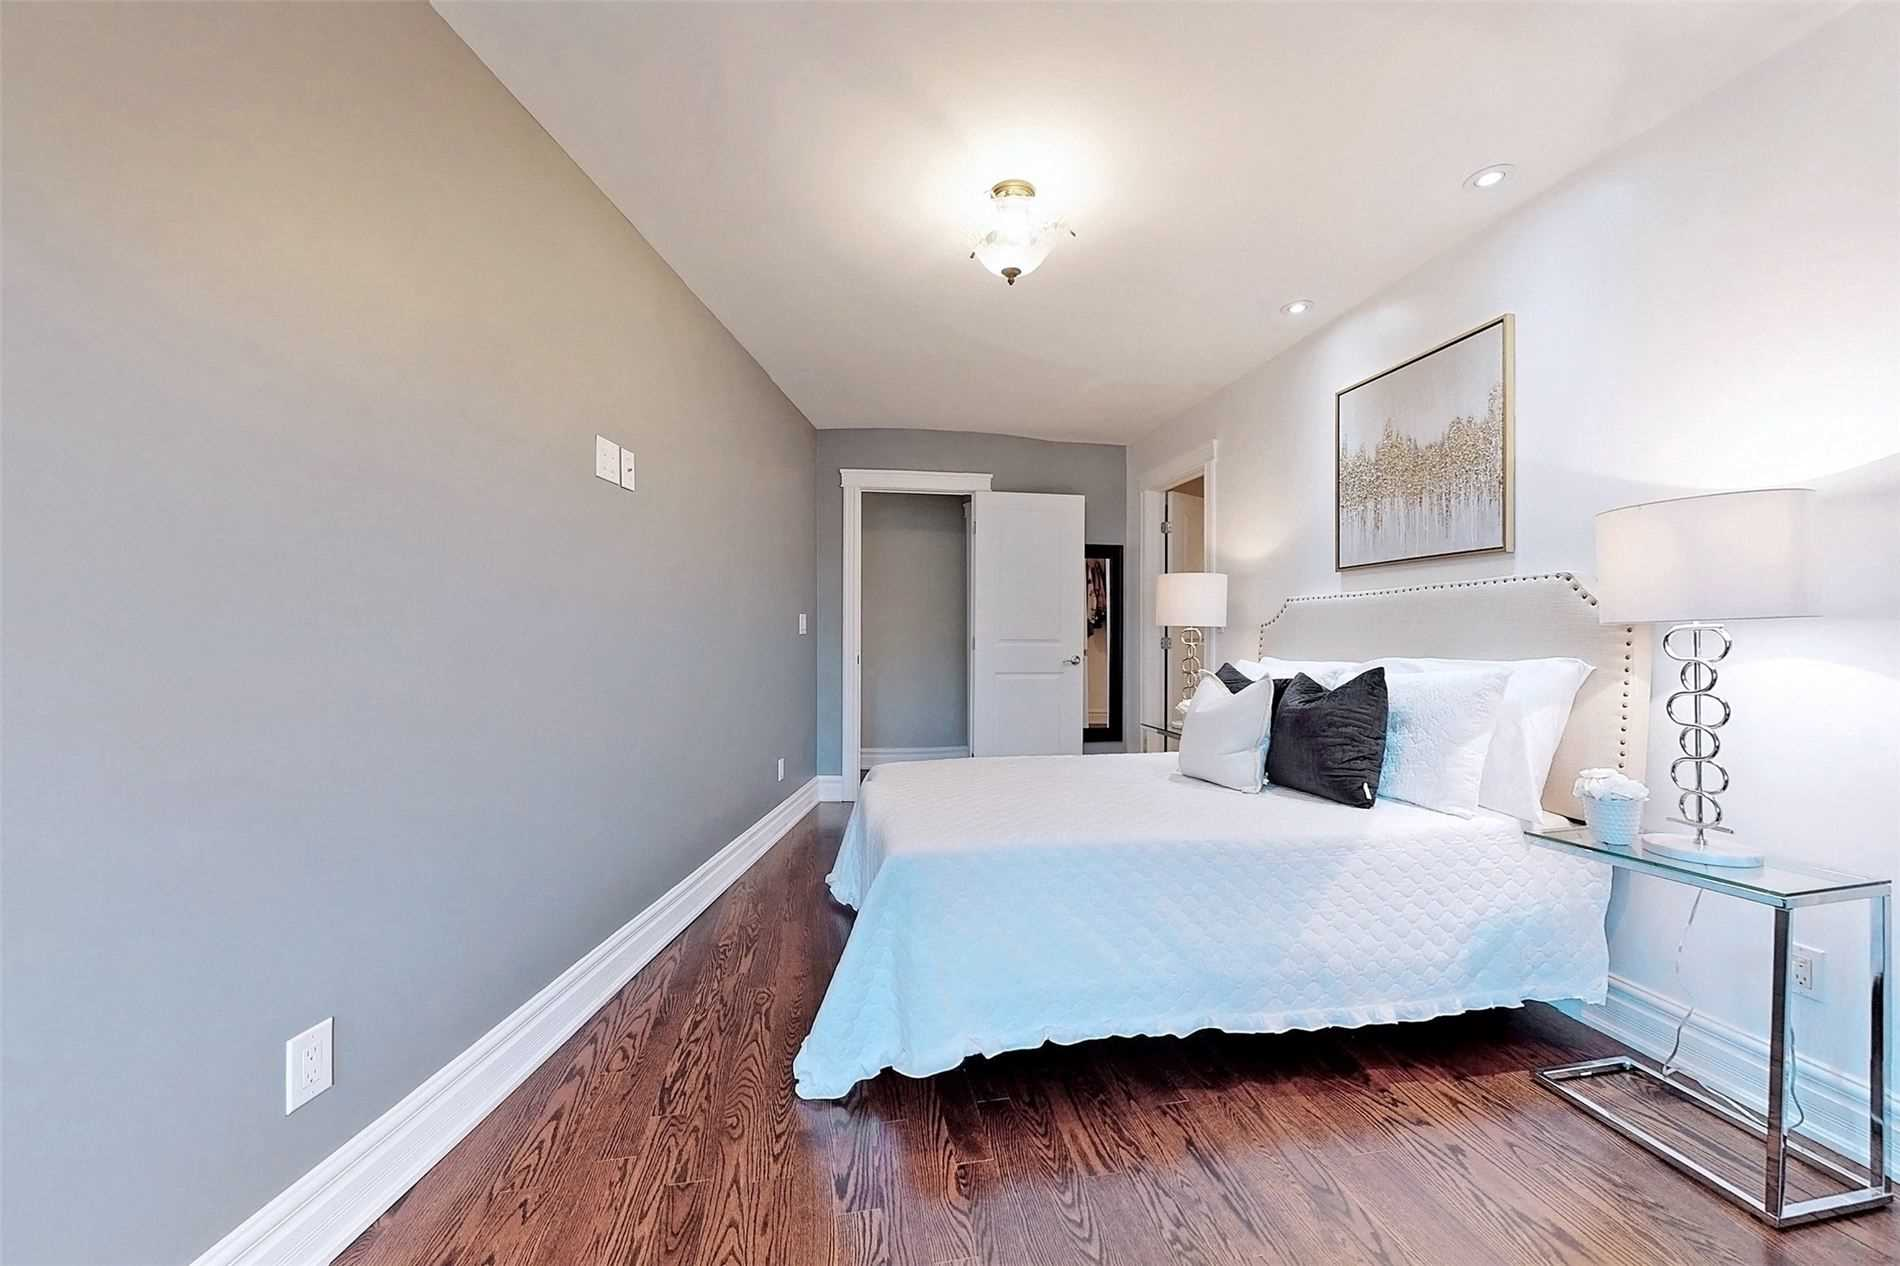 Detached house For Sale In Toronto - 65 O'connor Dr, Toronto, Ontario, Canada M4K2K3 , 3 Bedrooms Bedrooms, ,5 BathroomsBathrooms,Detached,For Sale,O'connor